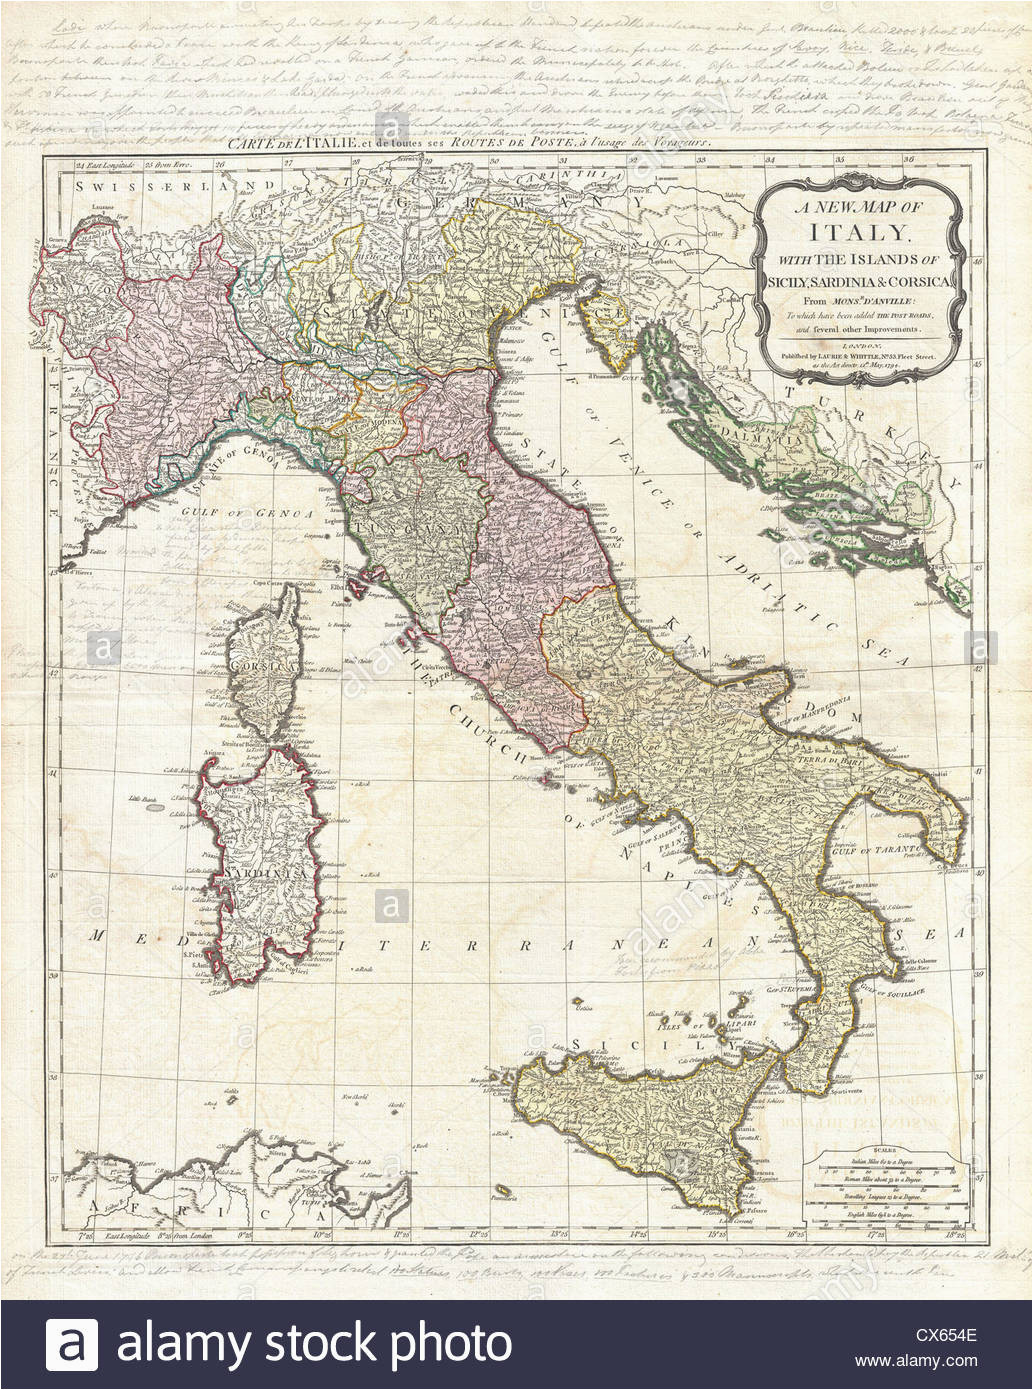 italy map stock photos italy map stock images alamy